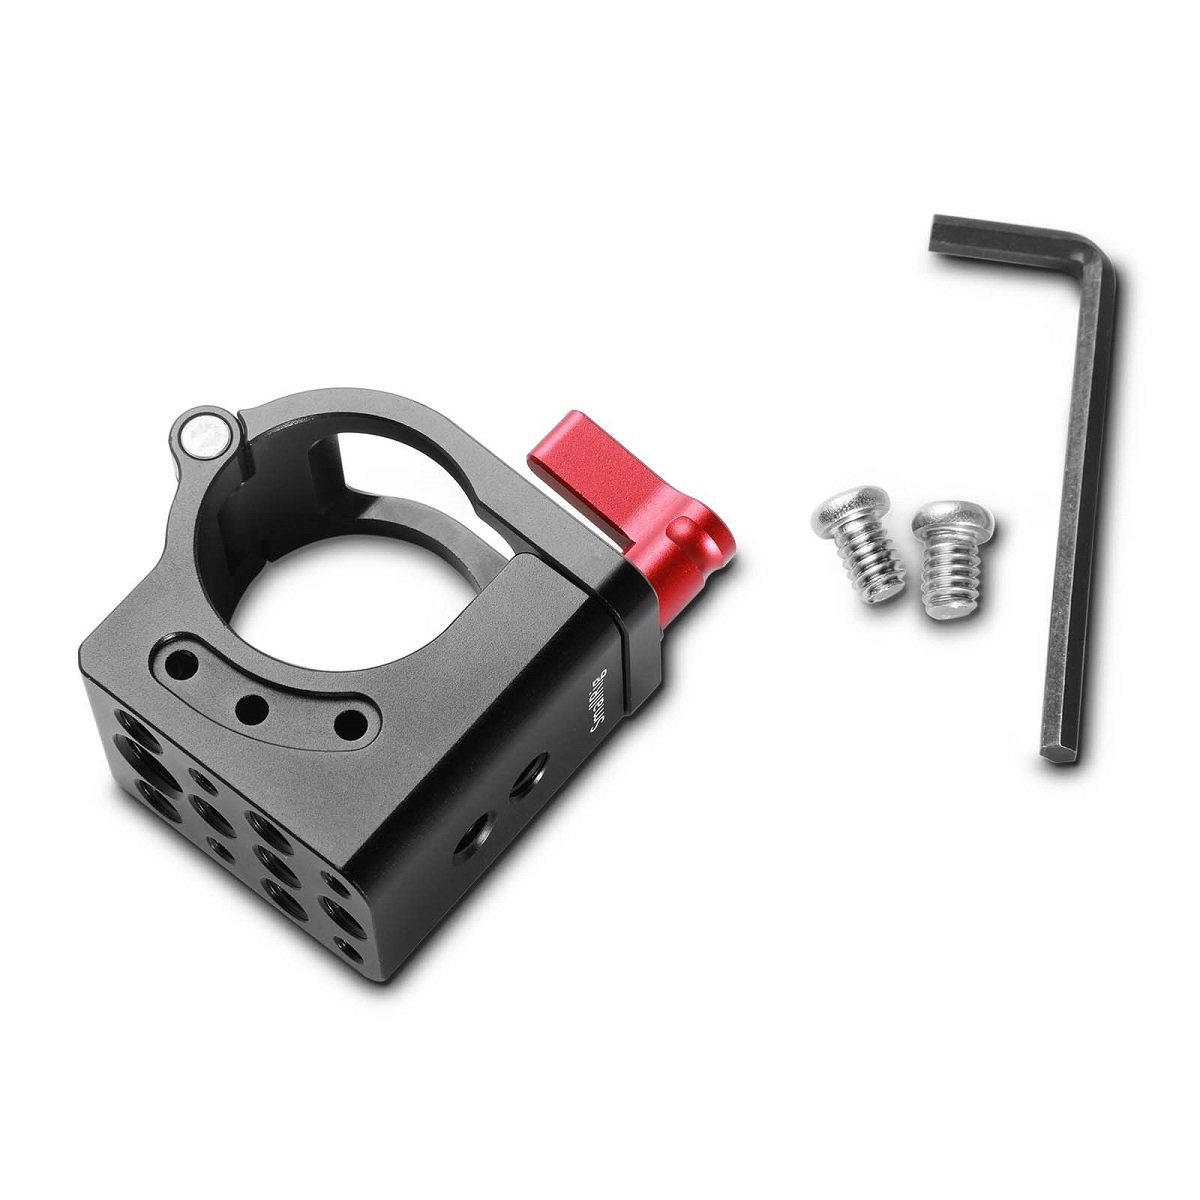 1925 SMALLRIG Aluminum 30mm Rod Clamp per DJI Ronin and FREEFLY MOVI Pro Gimbal Stabilizers